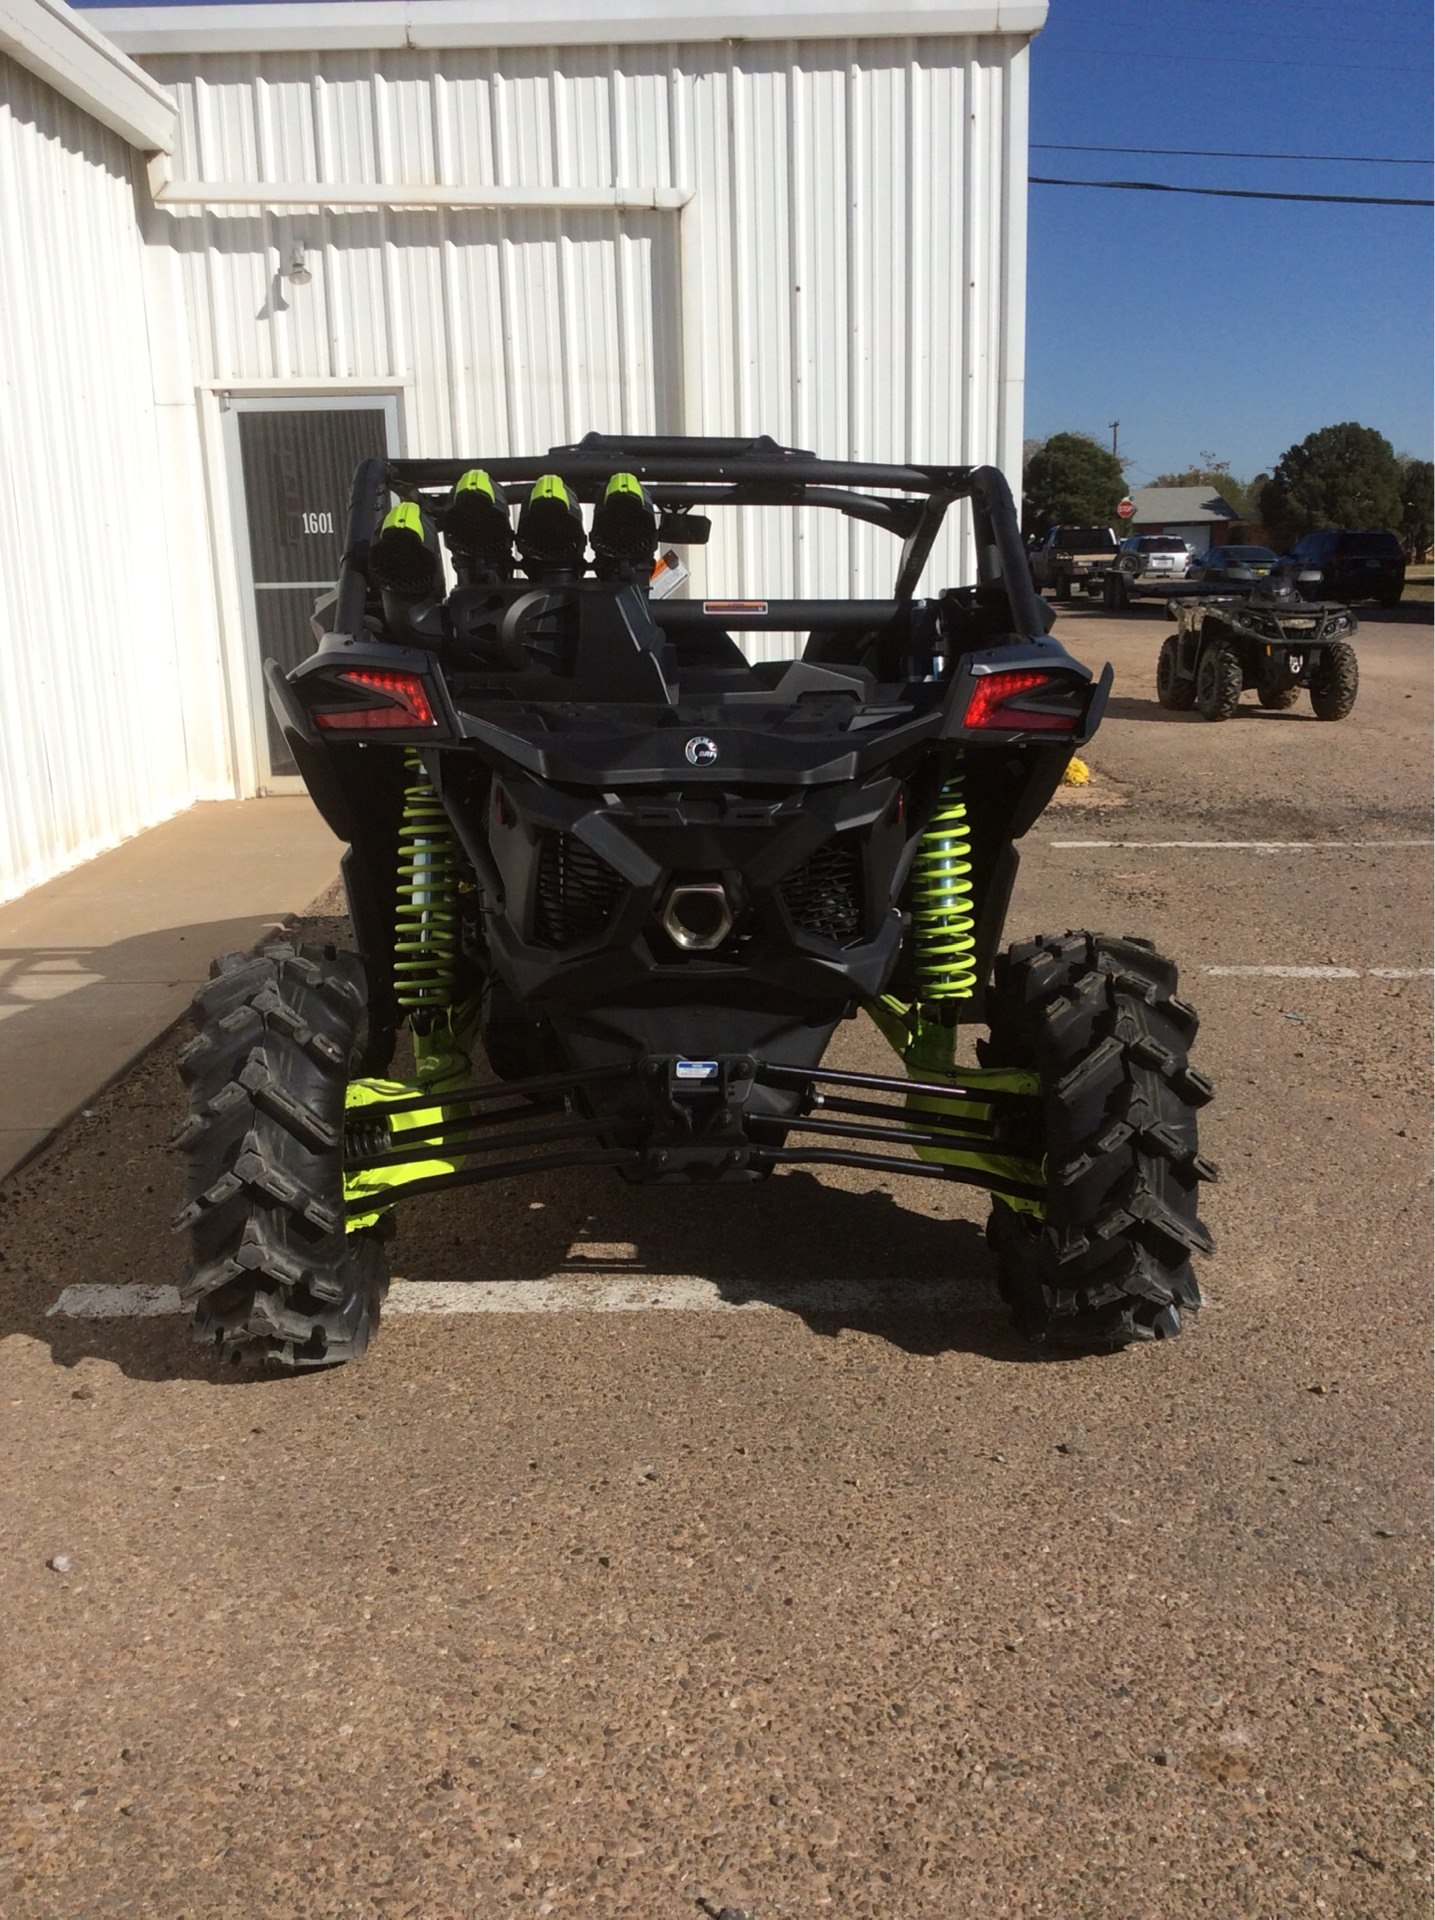 2020 Can-Am Maverick X3 X MR Turbo in Clovis, New Mexico - Photo 5